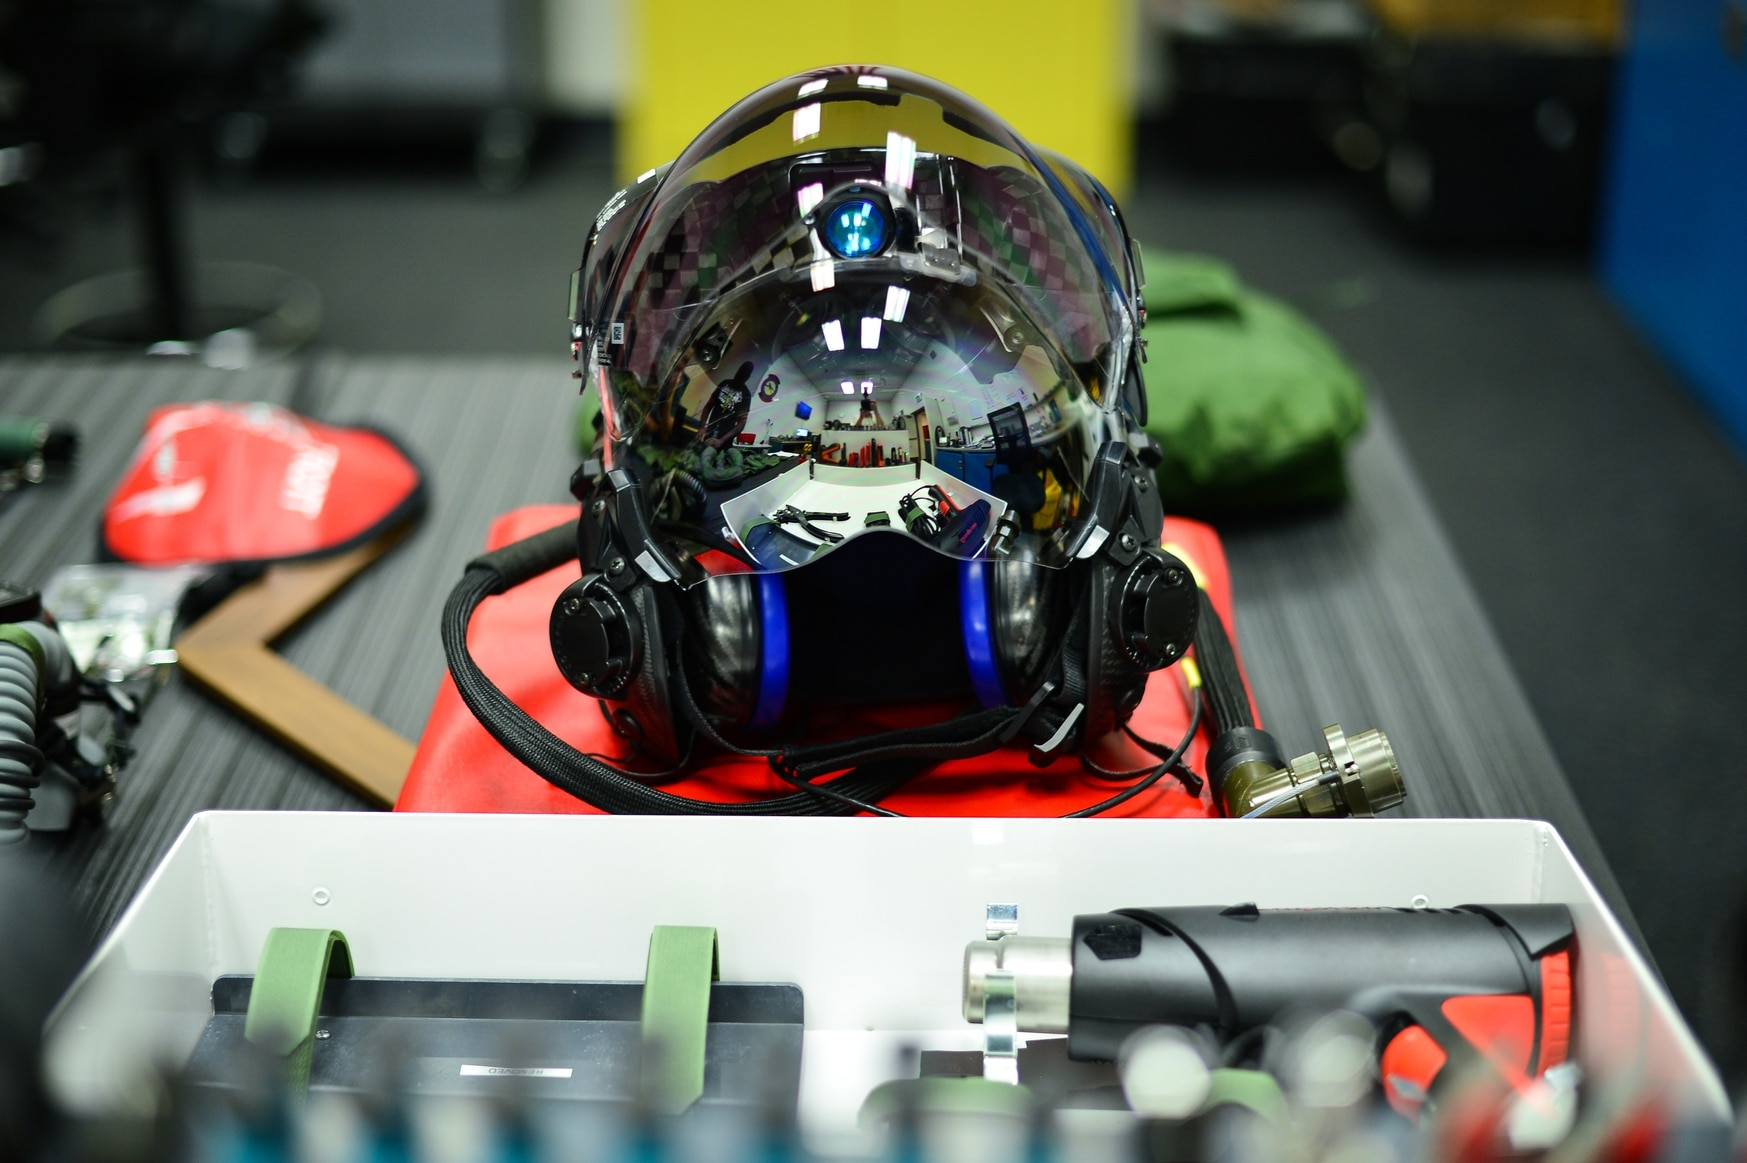 The F-35 Gen III helmet features six external cameras as well as built-in night vision. (R. Nial Bradshaw/U.S. Air Force)